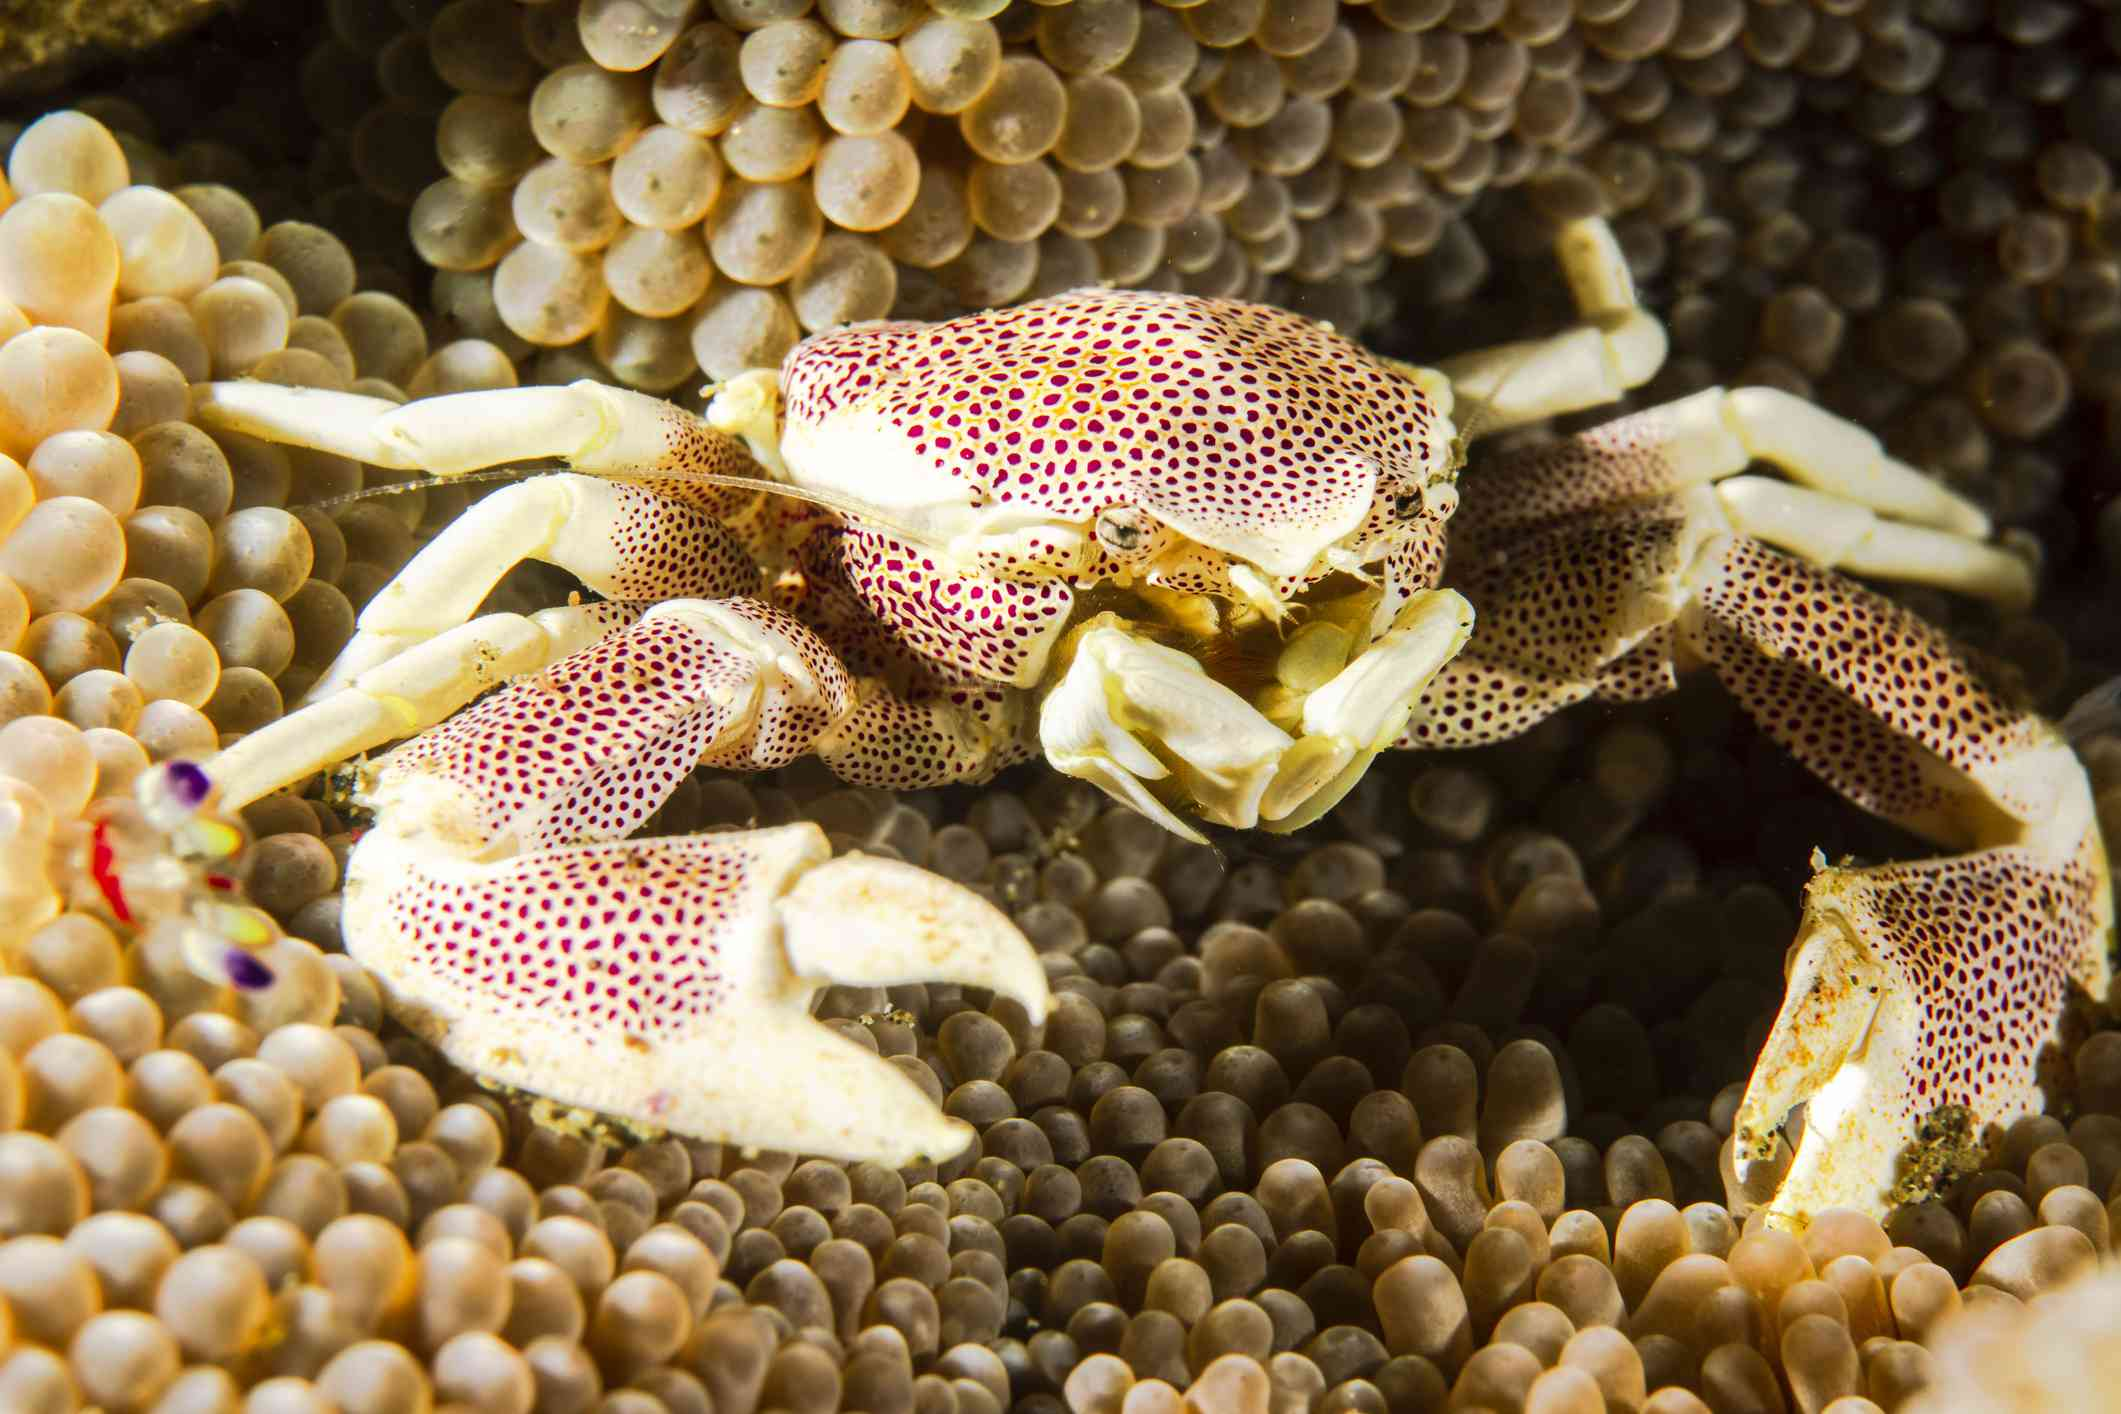 A dotted porcelain crab on a sea anemone.